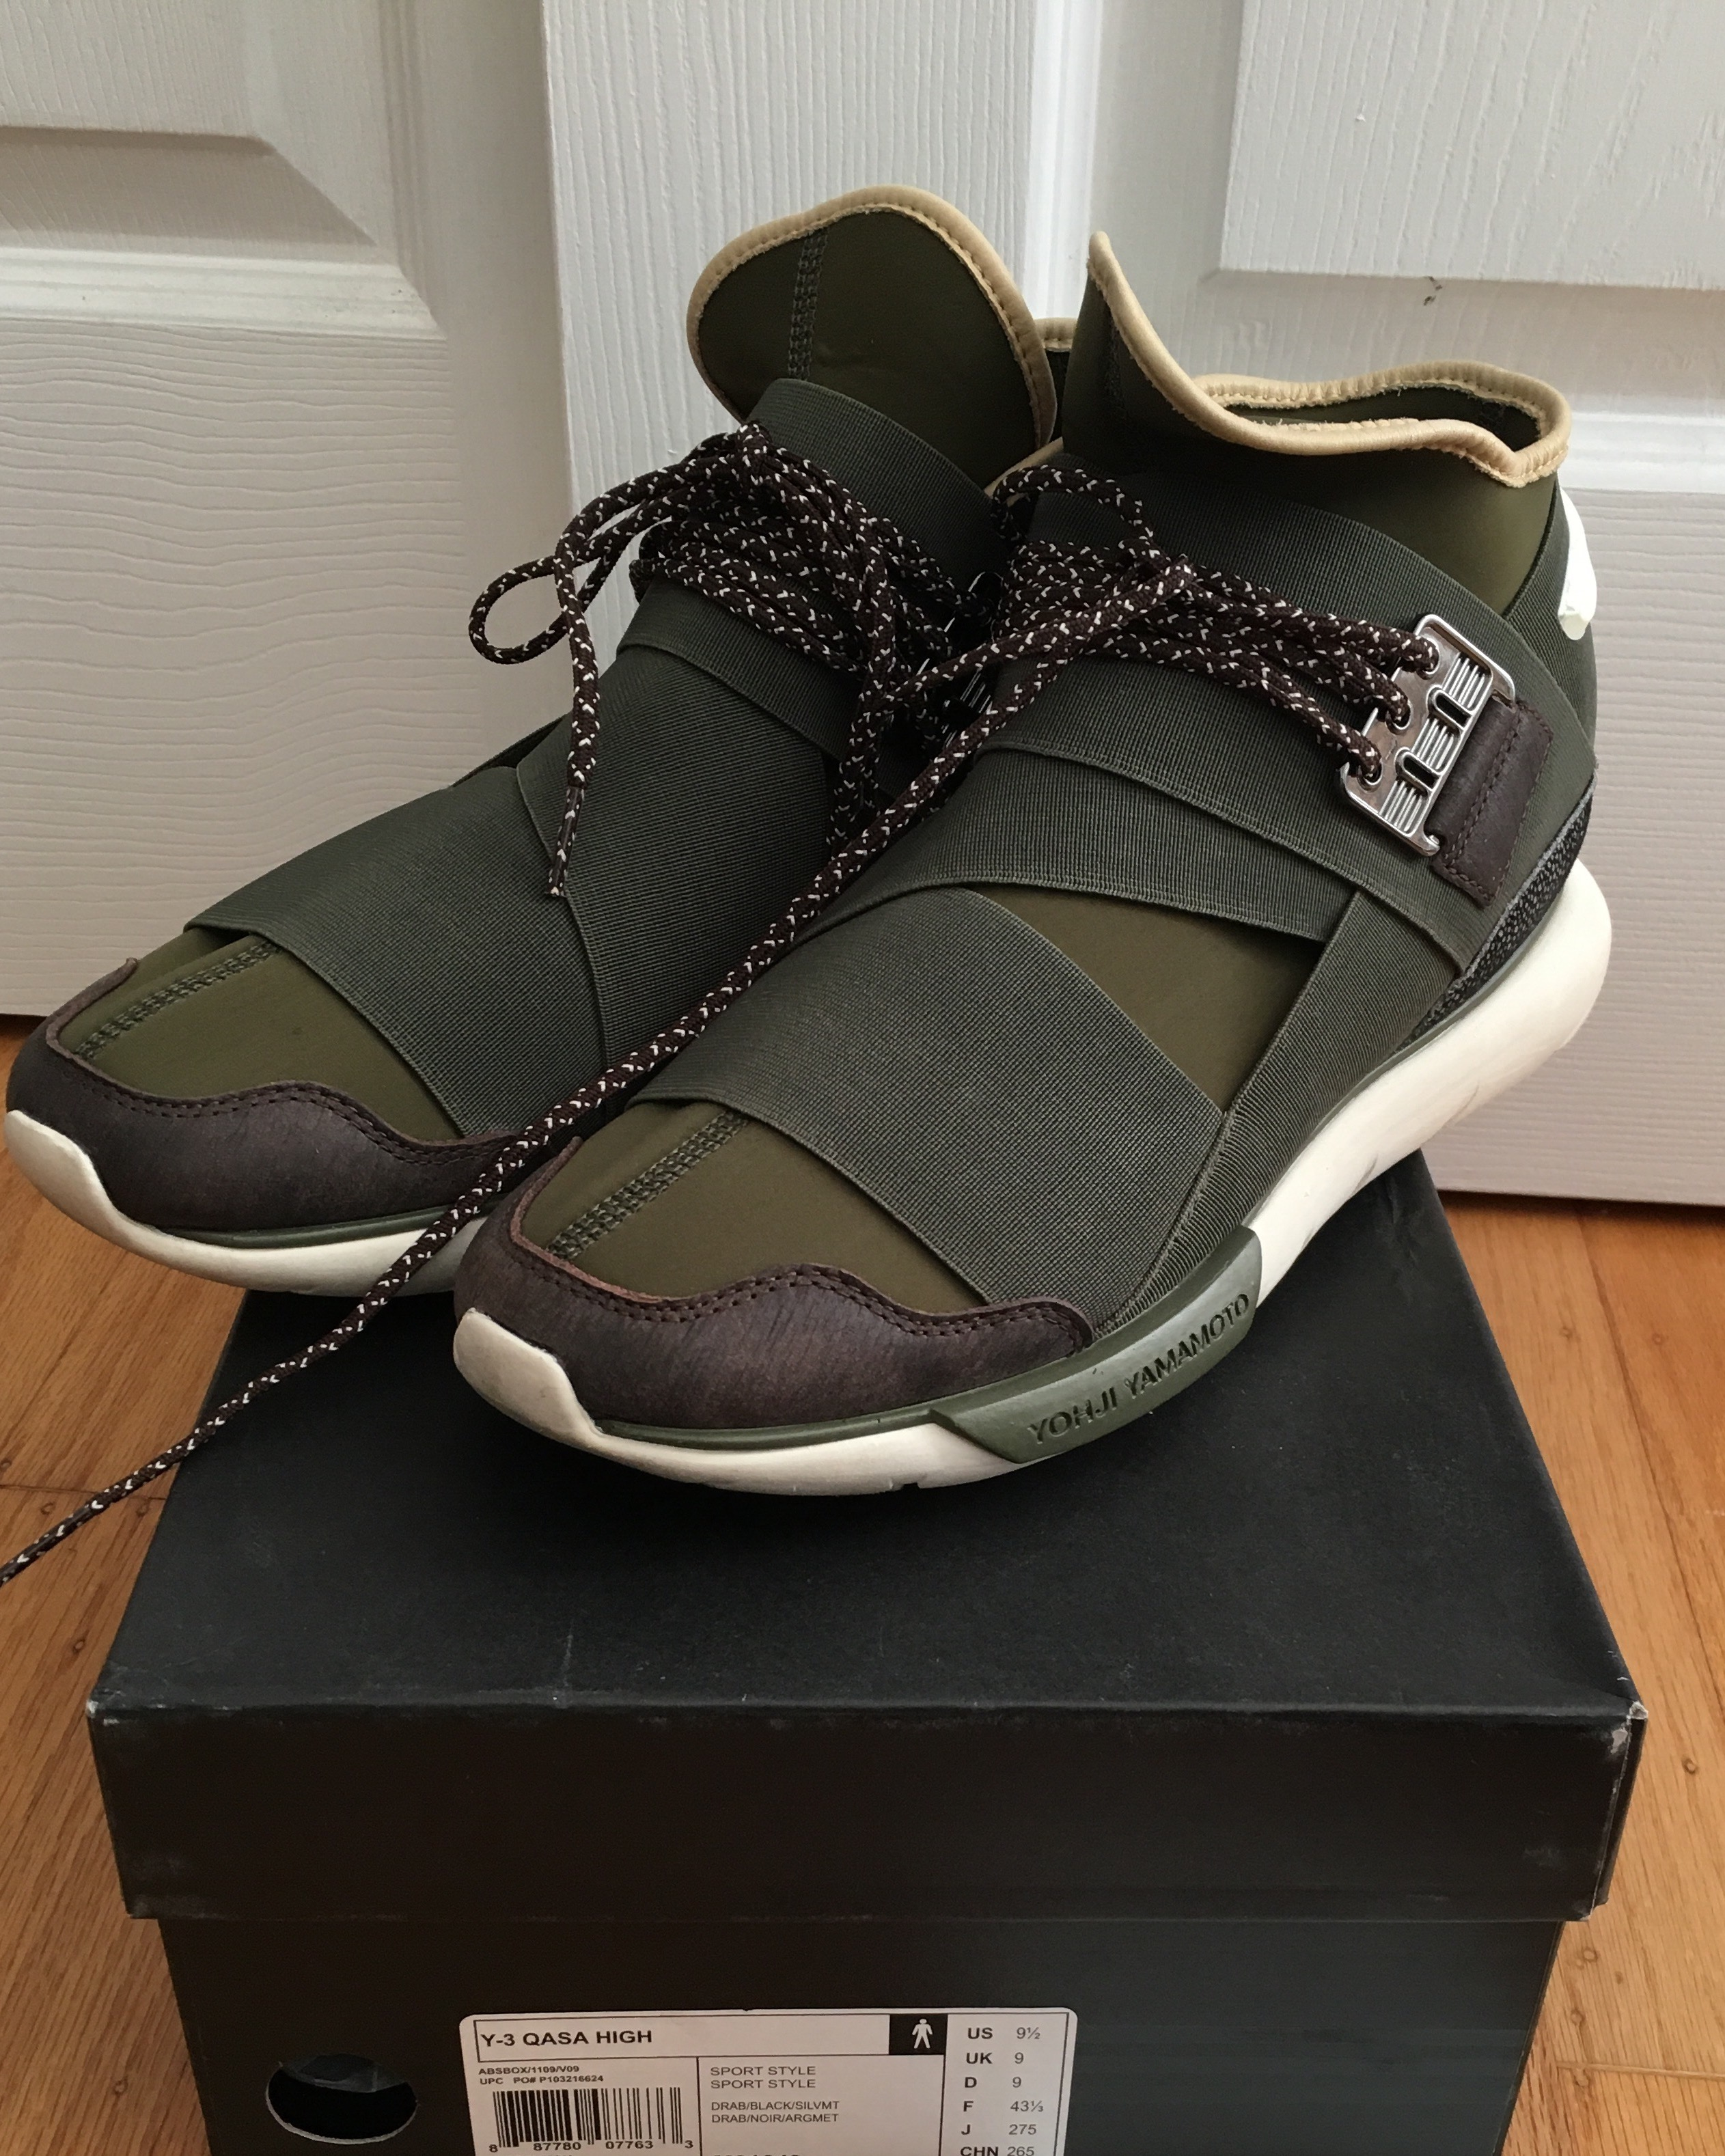 df50b03f4 Y-3 Y-3 Olive qasa high Size 9.5 - Hi-Top Sneakers for Sale - Grailed